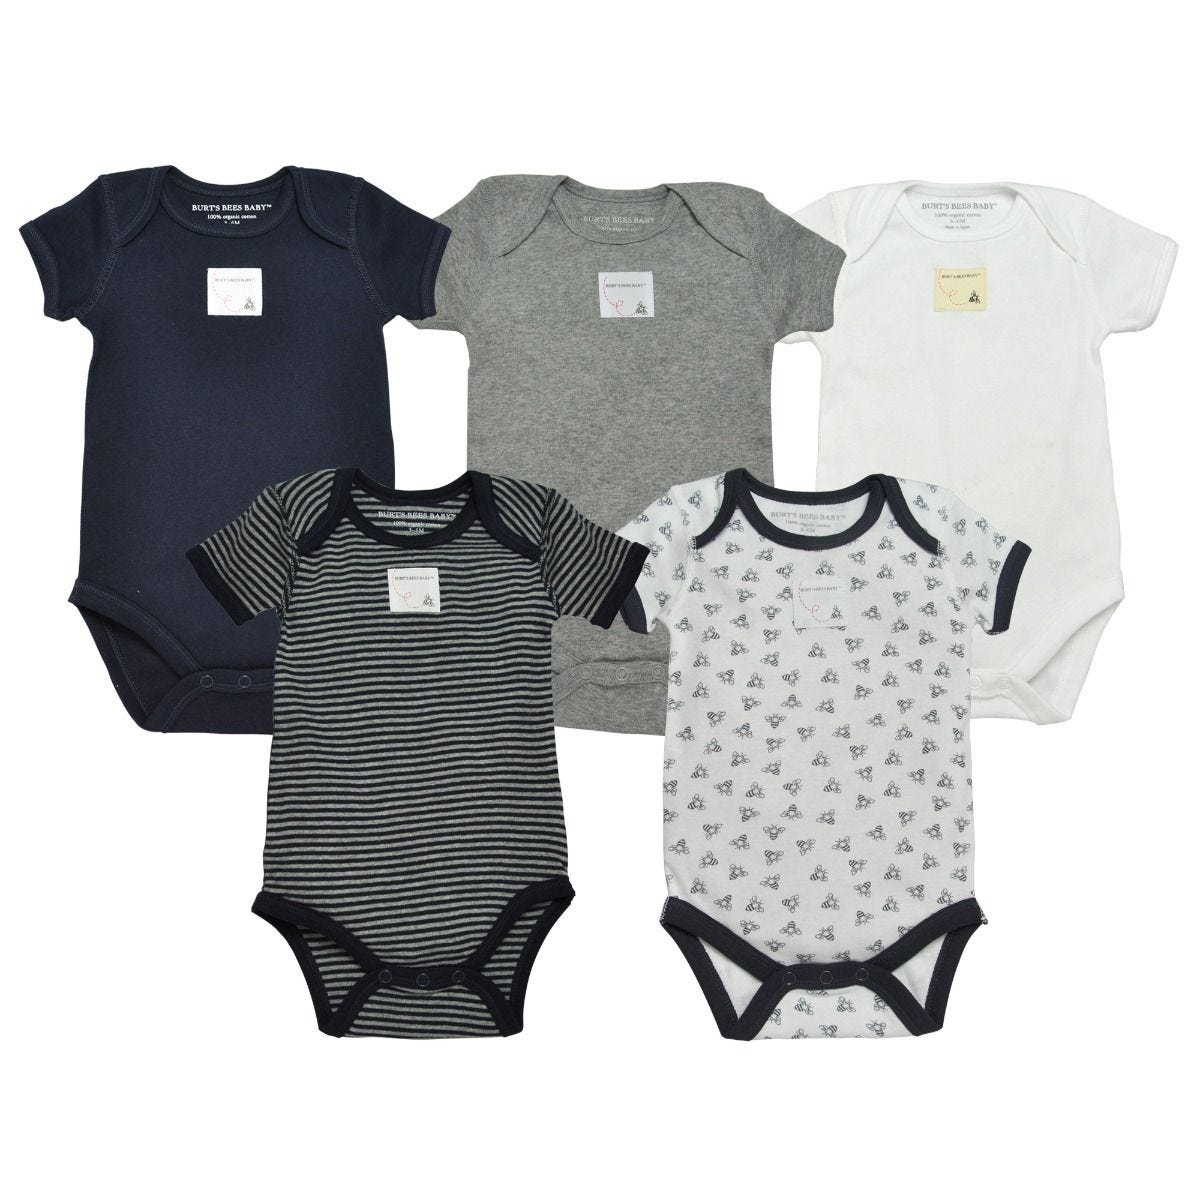 70ccd3b19 Bee Essentials Organic Short Sleeve Baby Bodysuits Set of 5